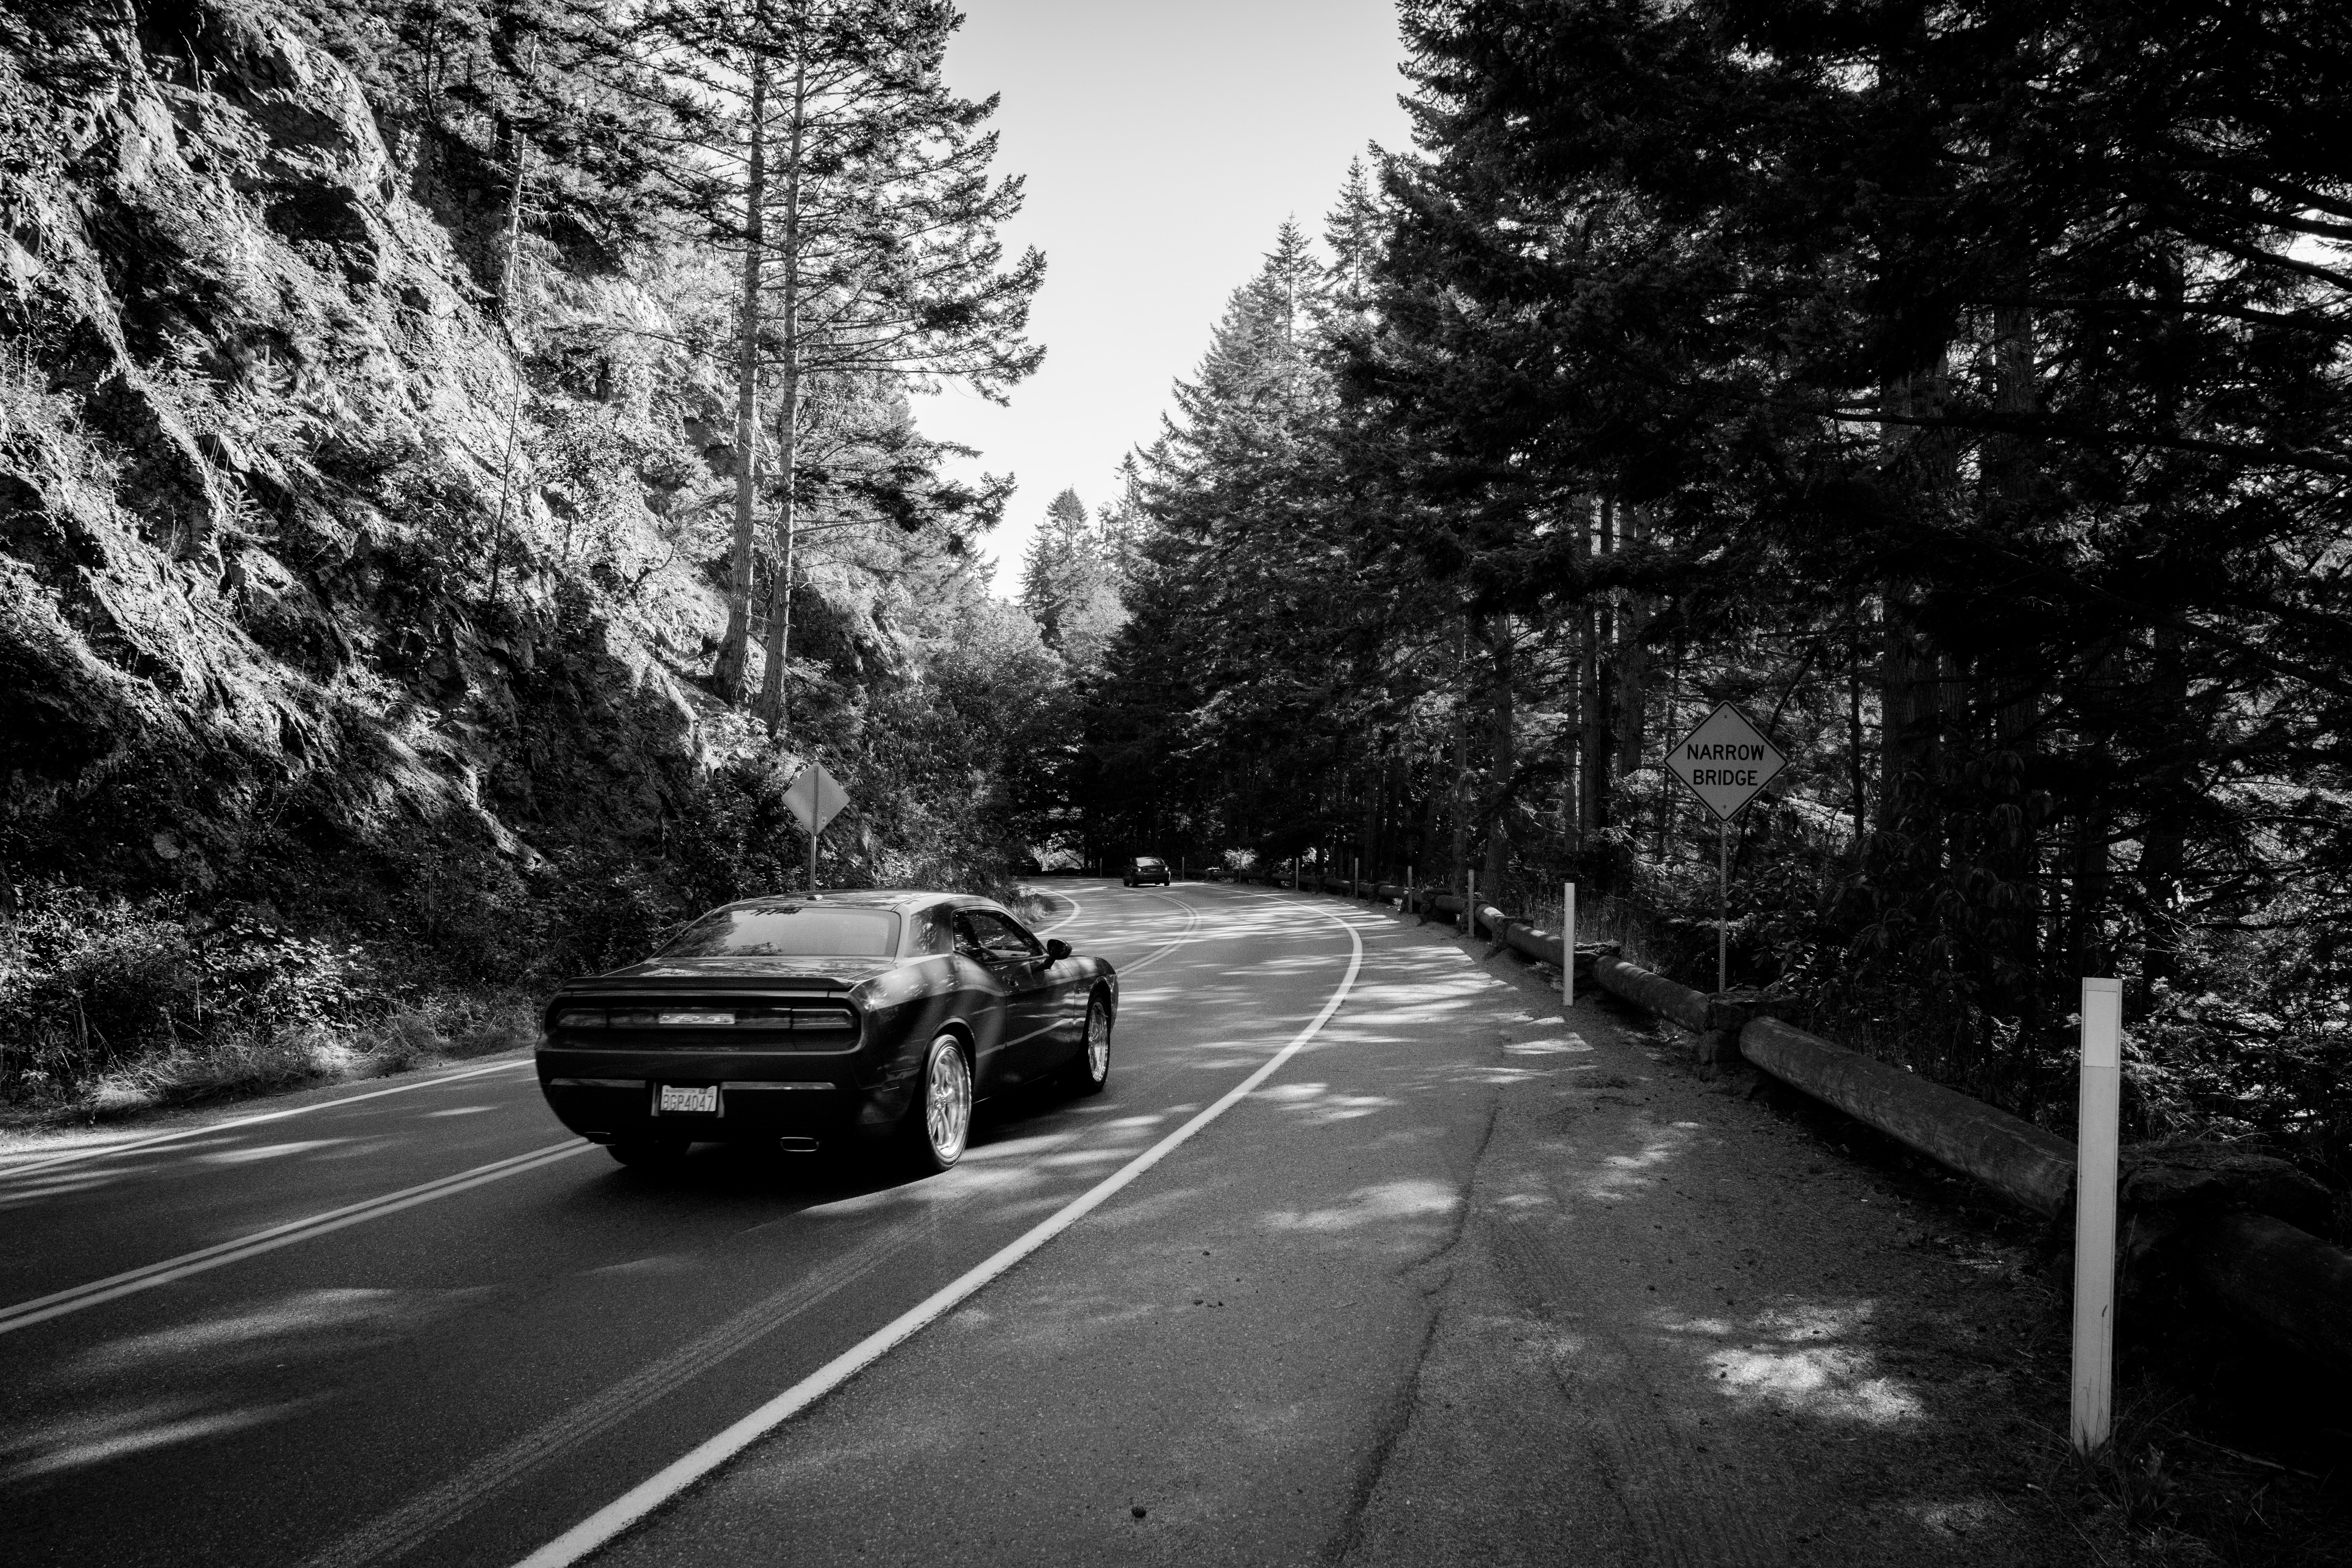 grayscale photography of car on road in between trees